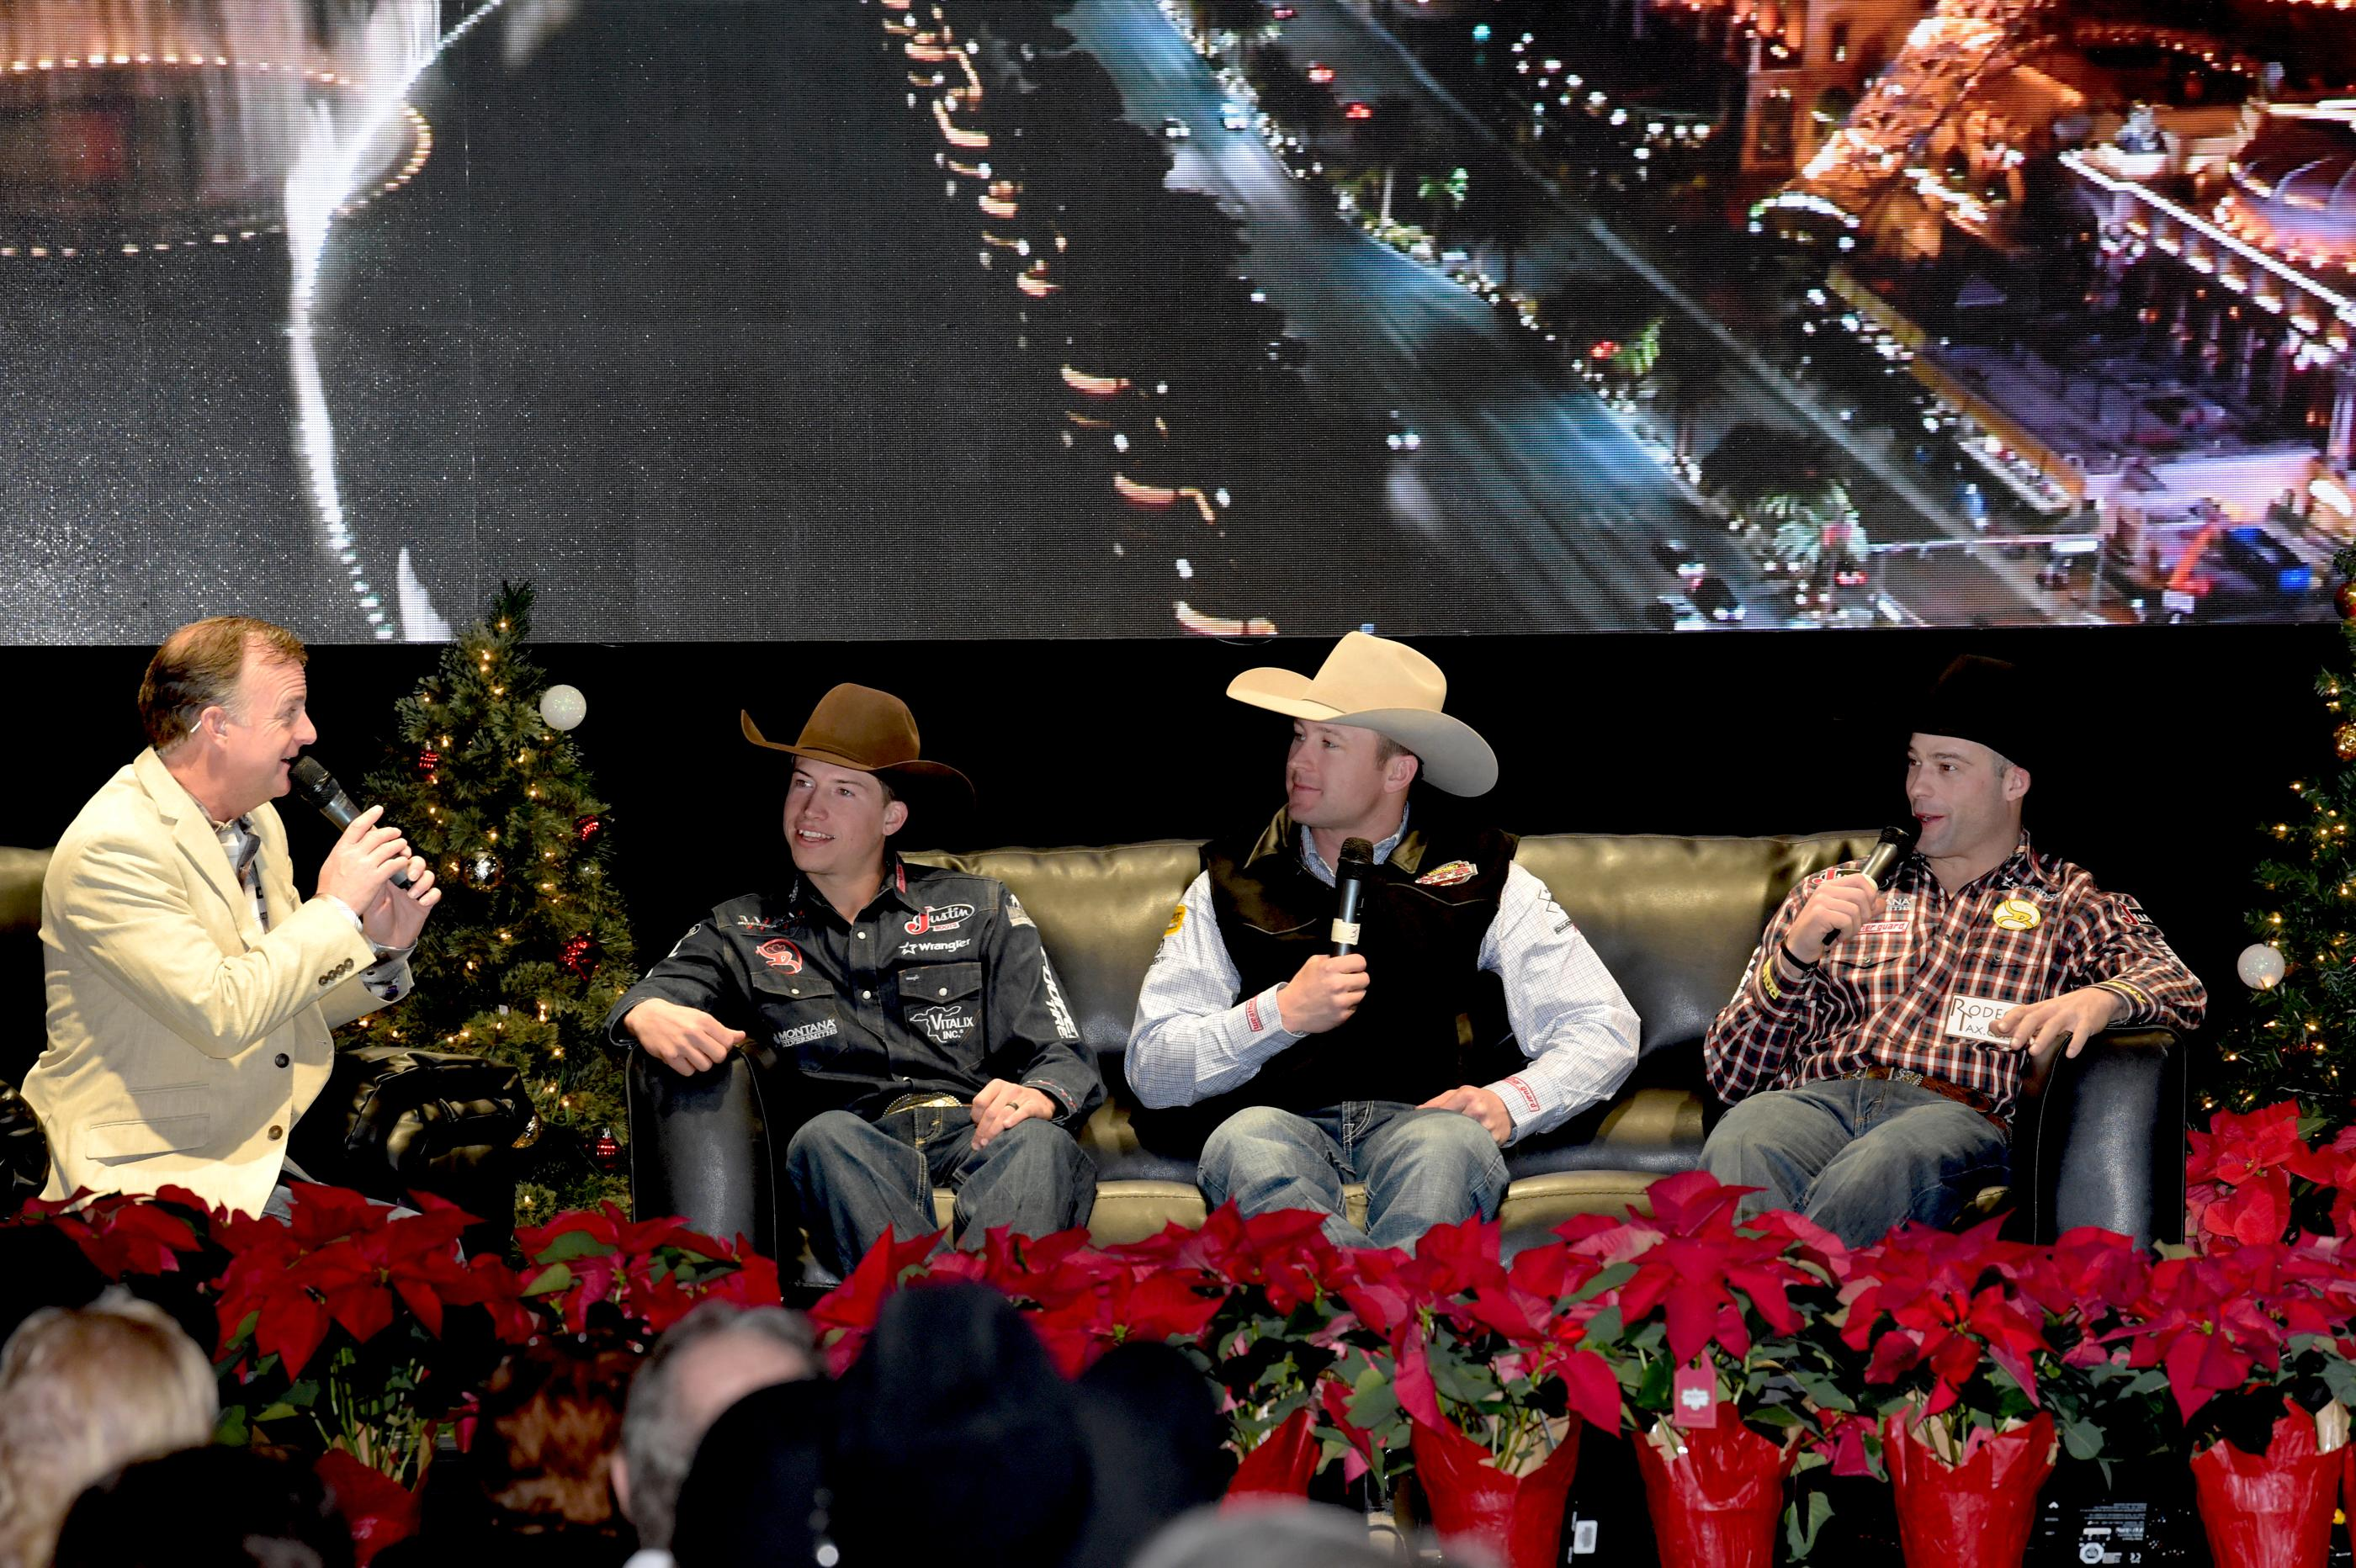 """Outside the Barrel"" with Flint Rasmussen as he interviews Bull Riders (l-r) Cody Webster, Nate Jestes and Dusty Tuckness during Cowboy Christmas on the Rodeo Live Stage at the Las Vegas Convention Center. Sunday December 10, 2017. [Glenn Pinkerton/Las Vegas News Bureau]"